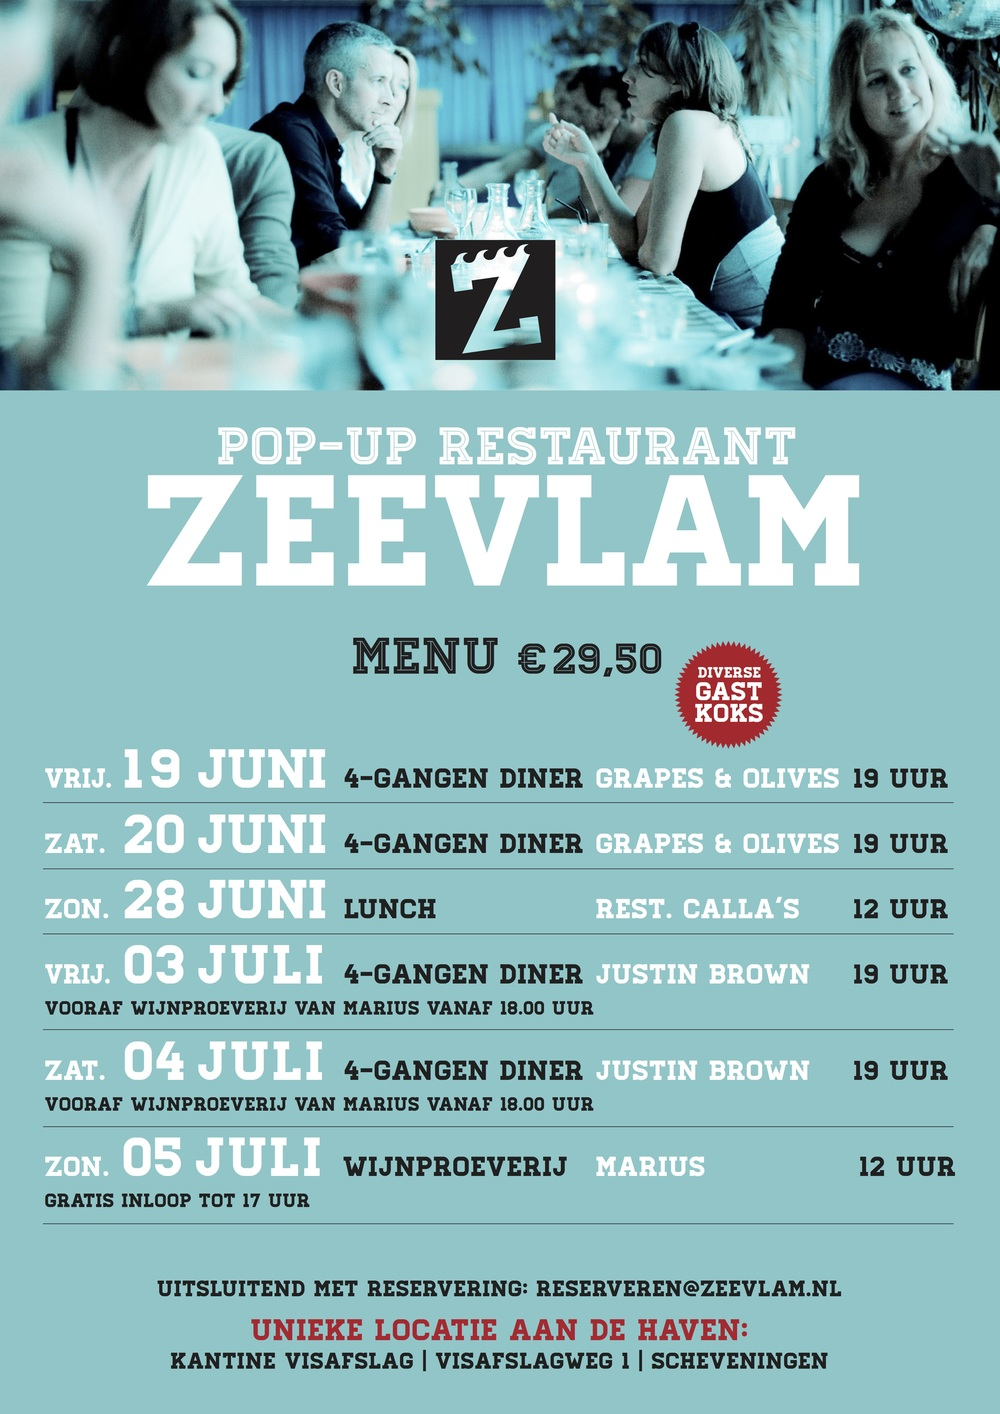 Agenda Pop-up Restaurant Zeevlam